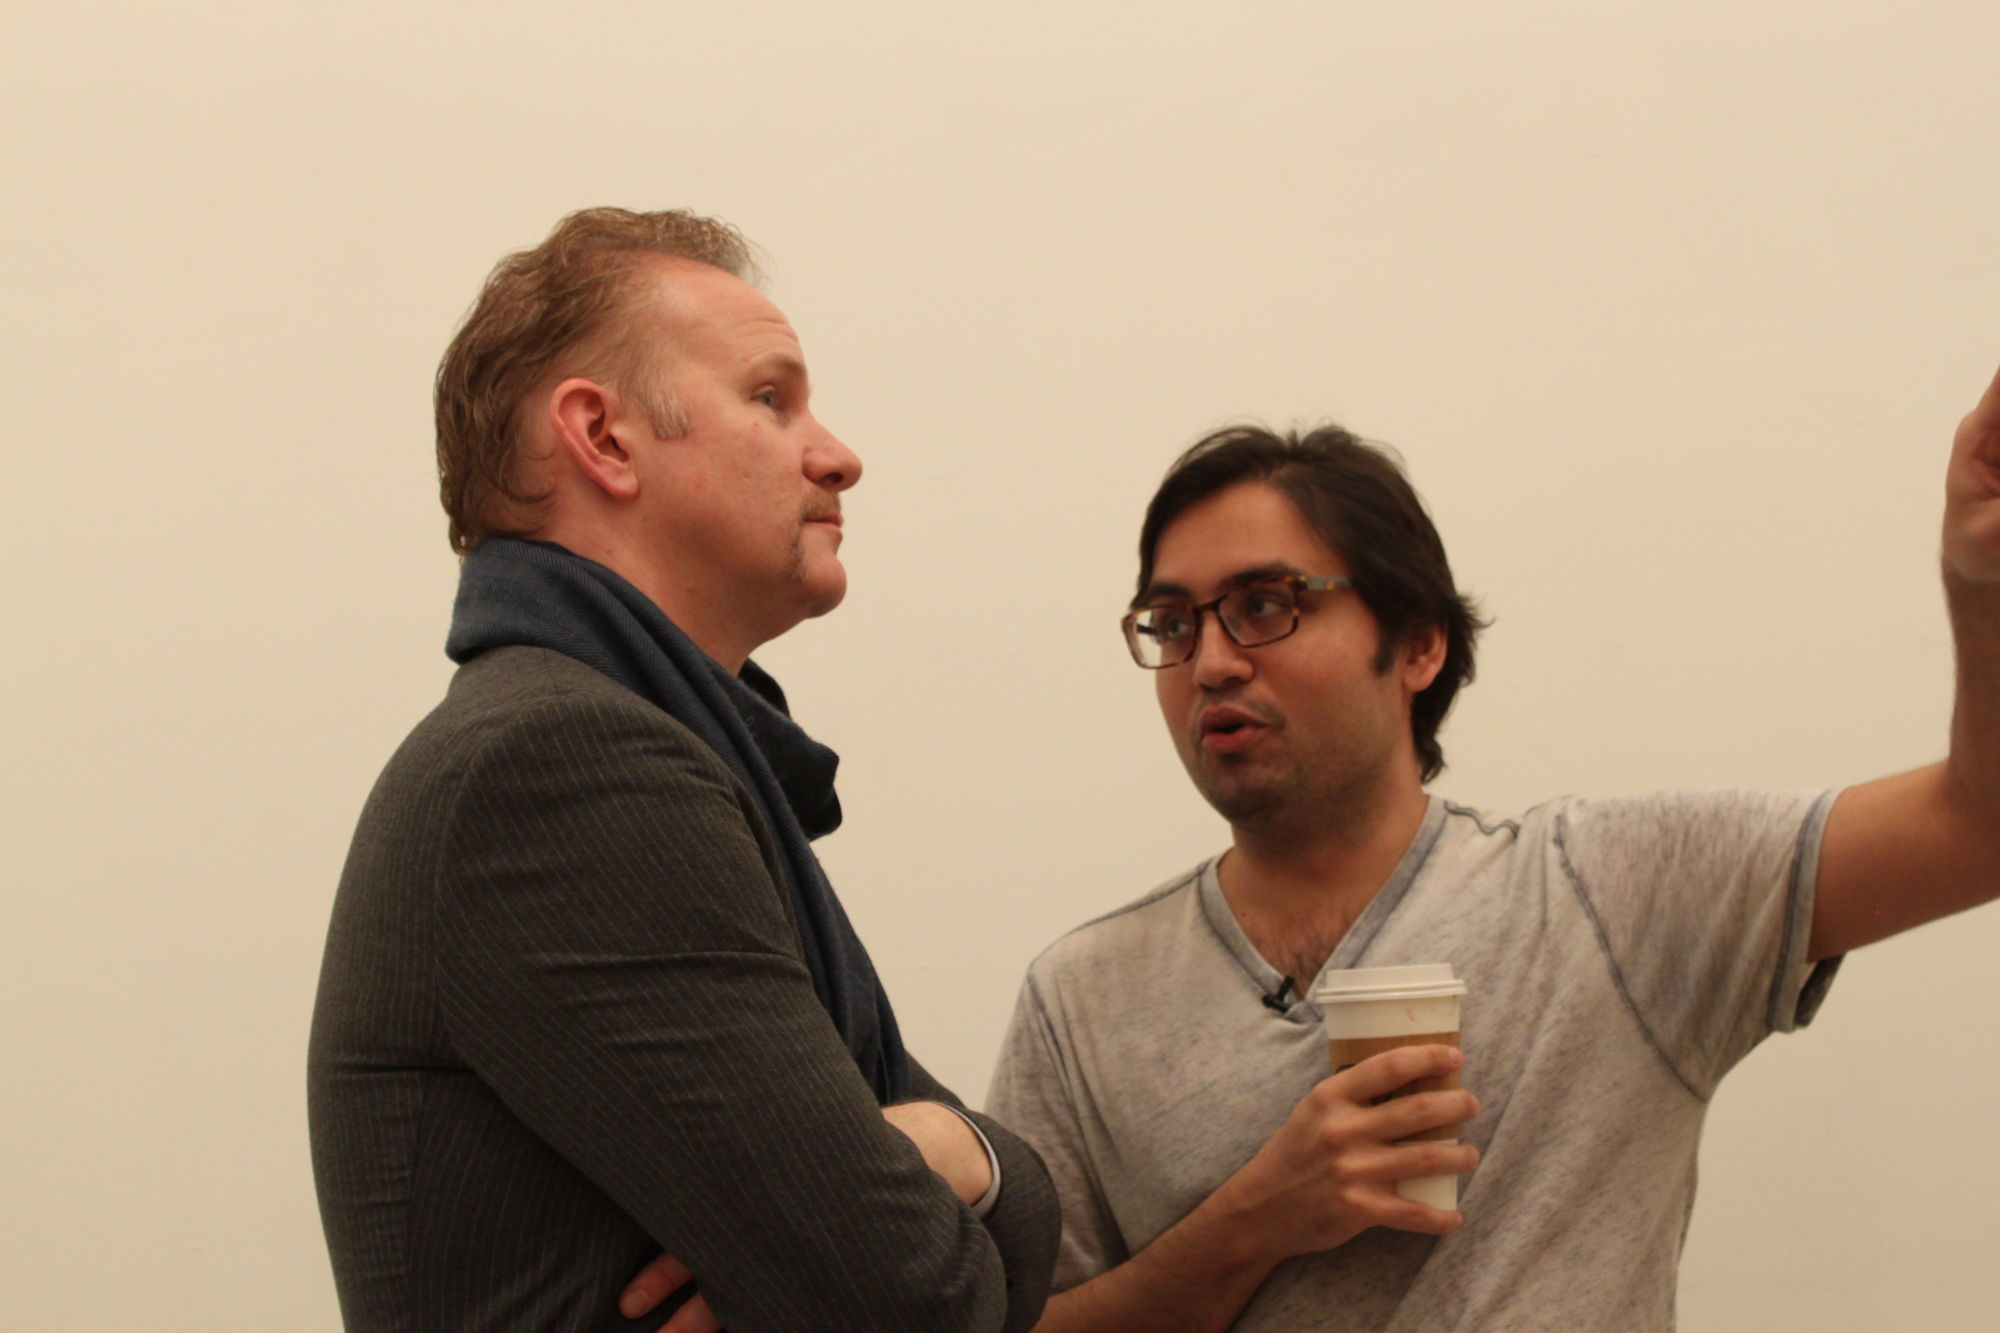 Amar discusses his vision for the project with filmmaker Morgan Spurlock during the New York exhibition.